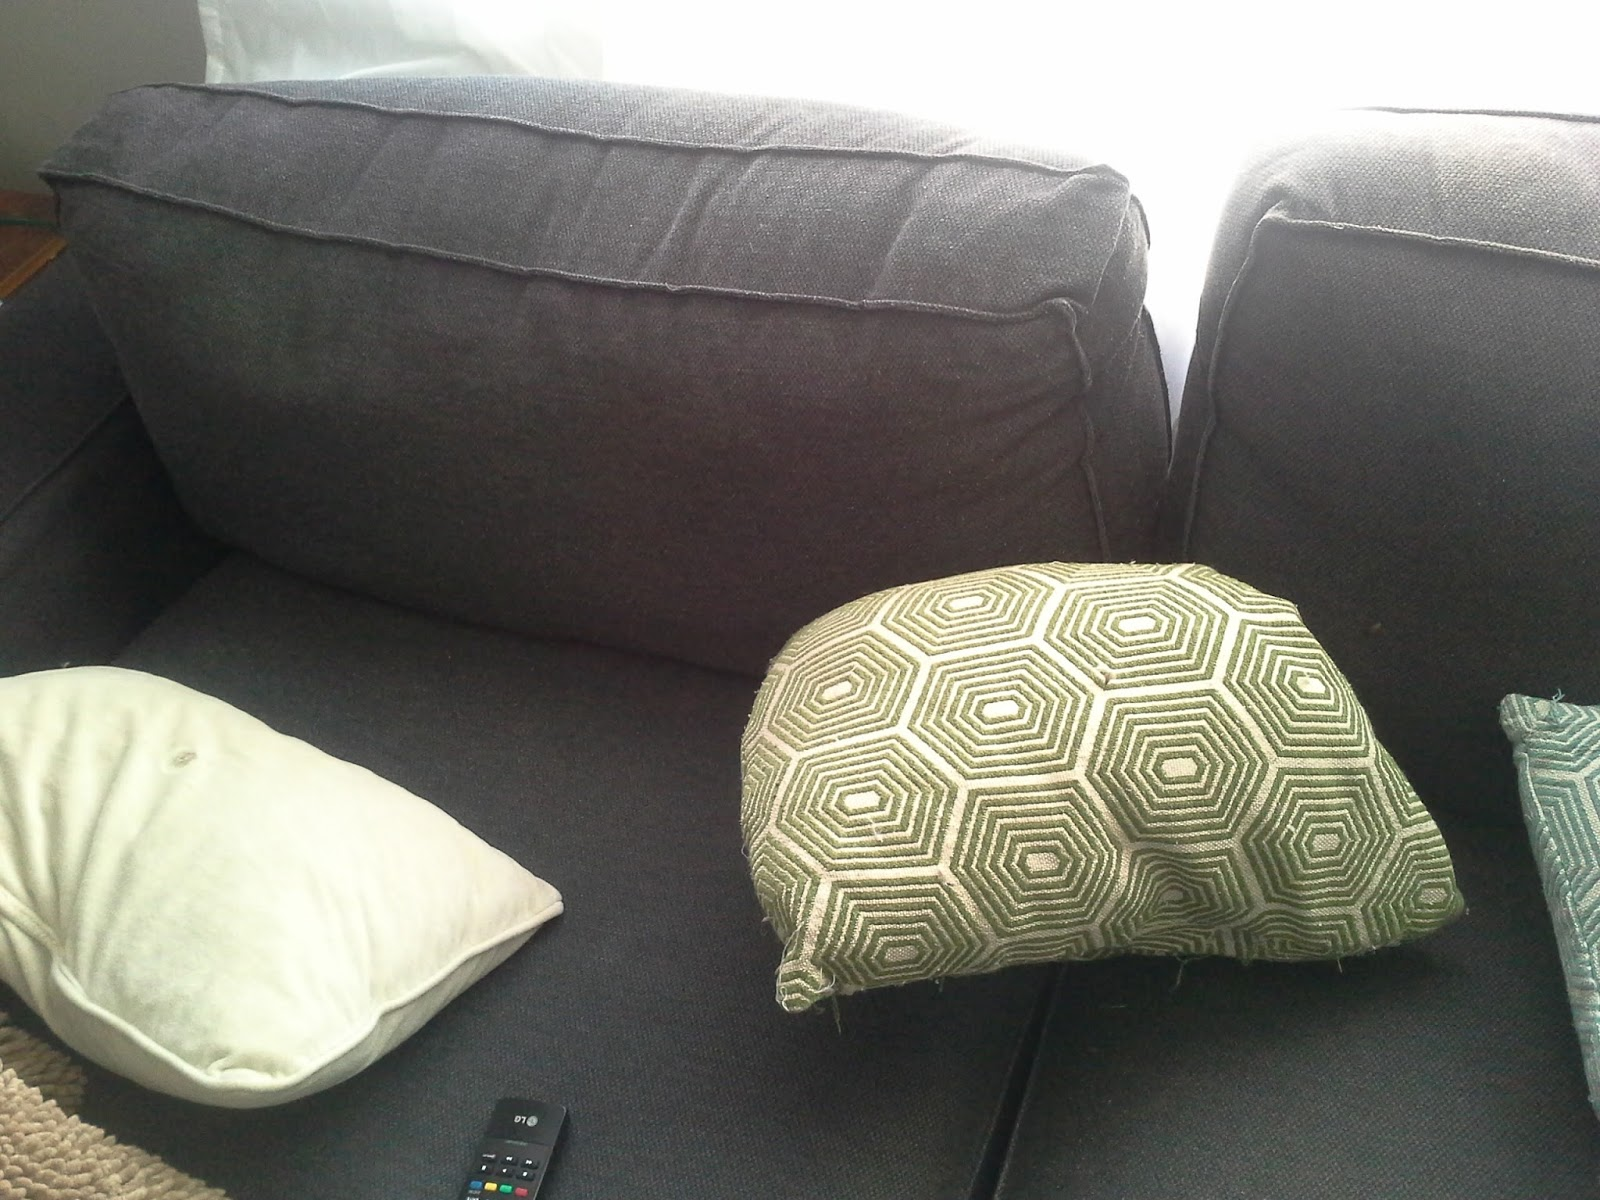 Kivik Sofa Ikea Test Lilly 39s Home Designs Ikea Kivik Review